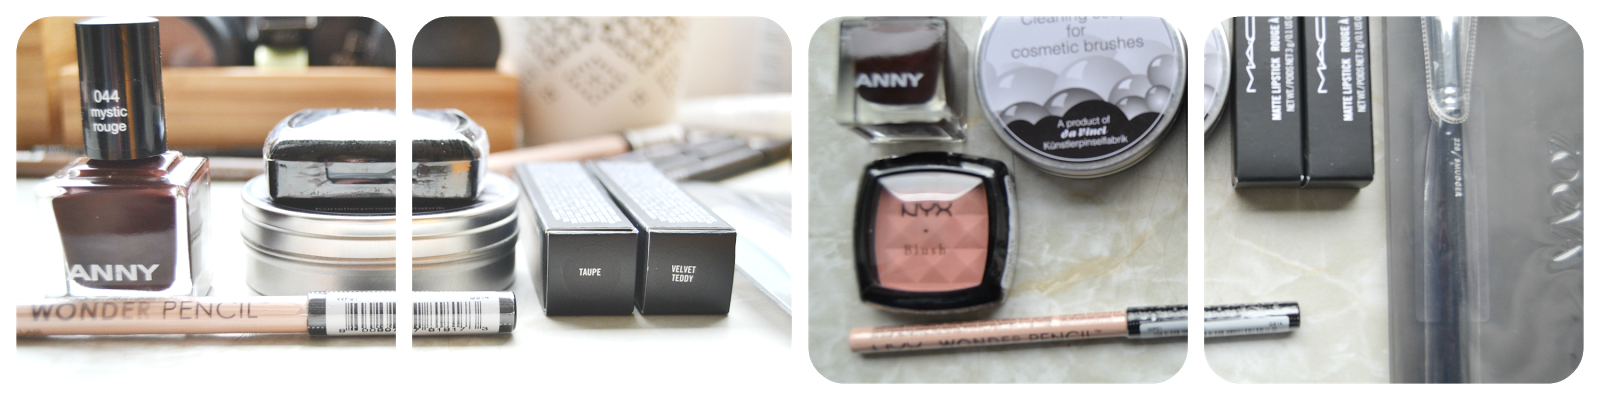 anny mystic rouge nyx mauve nix wonder pencil light mac velvet teddy taupe zoeva smudger